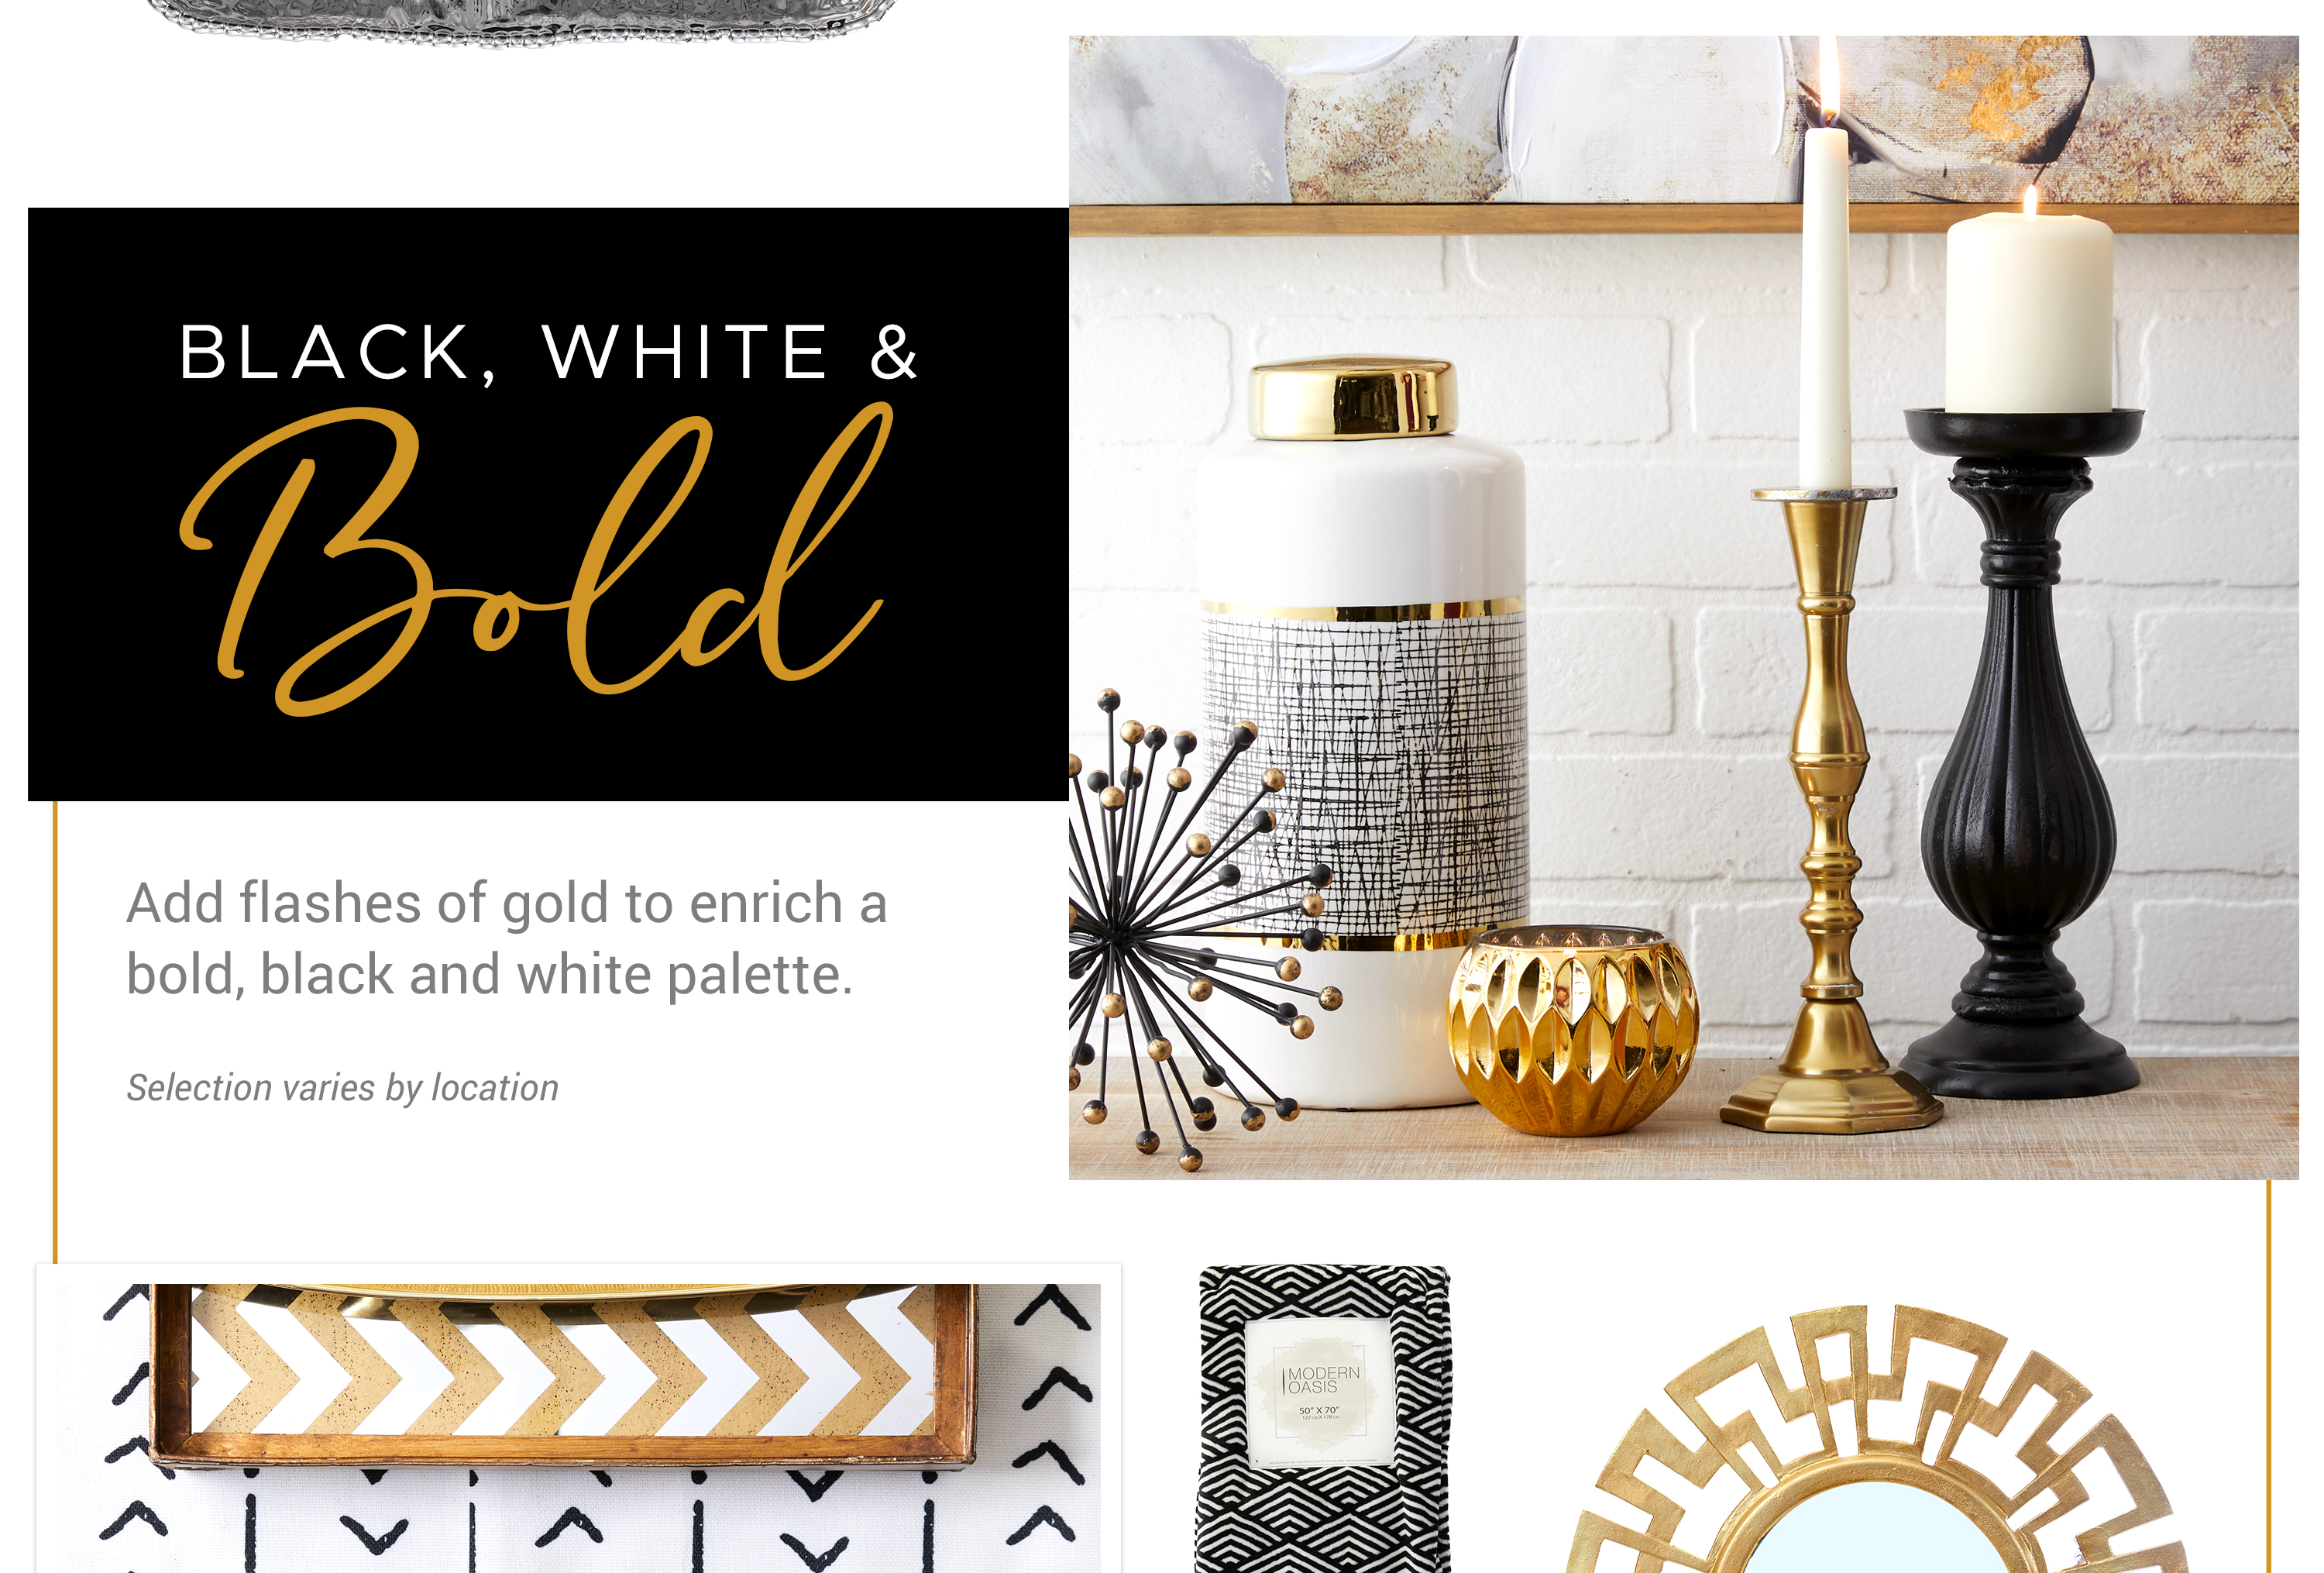 Black, White & Bold - Add flashes of gold to enrich a bold, black and white palette.